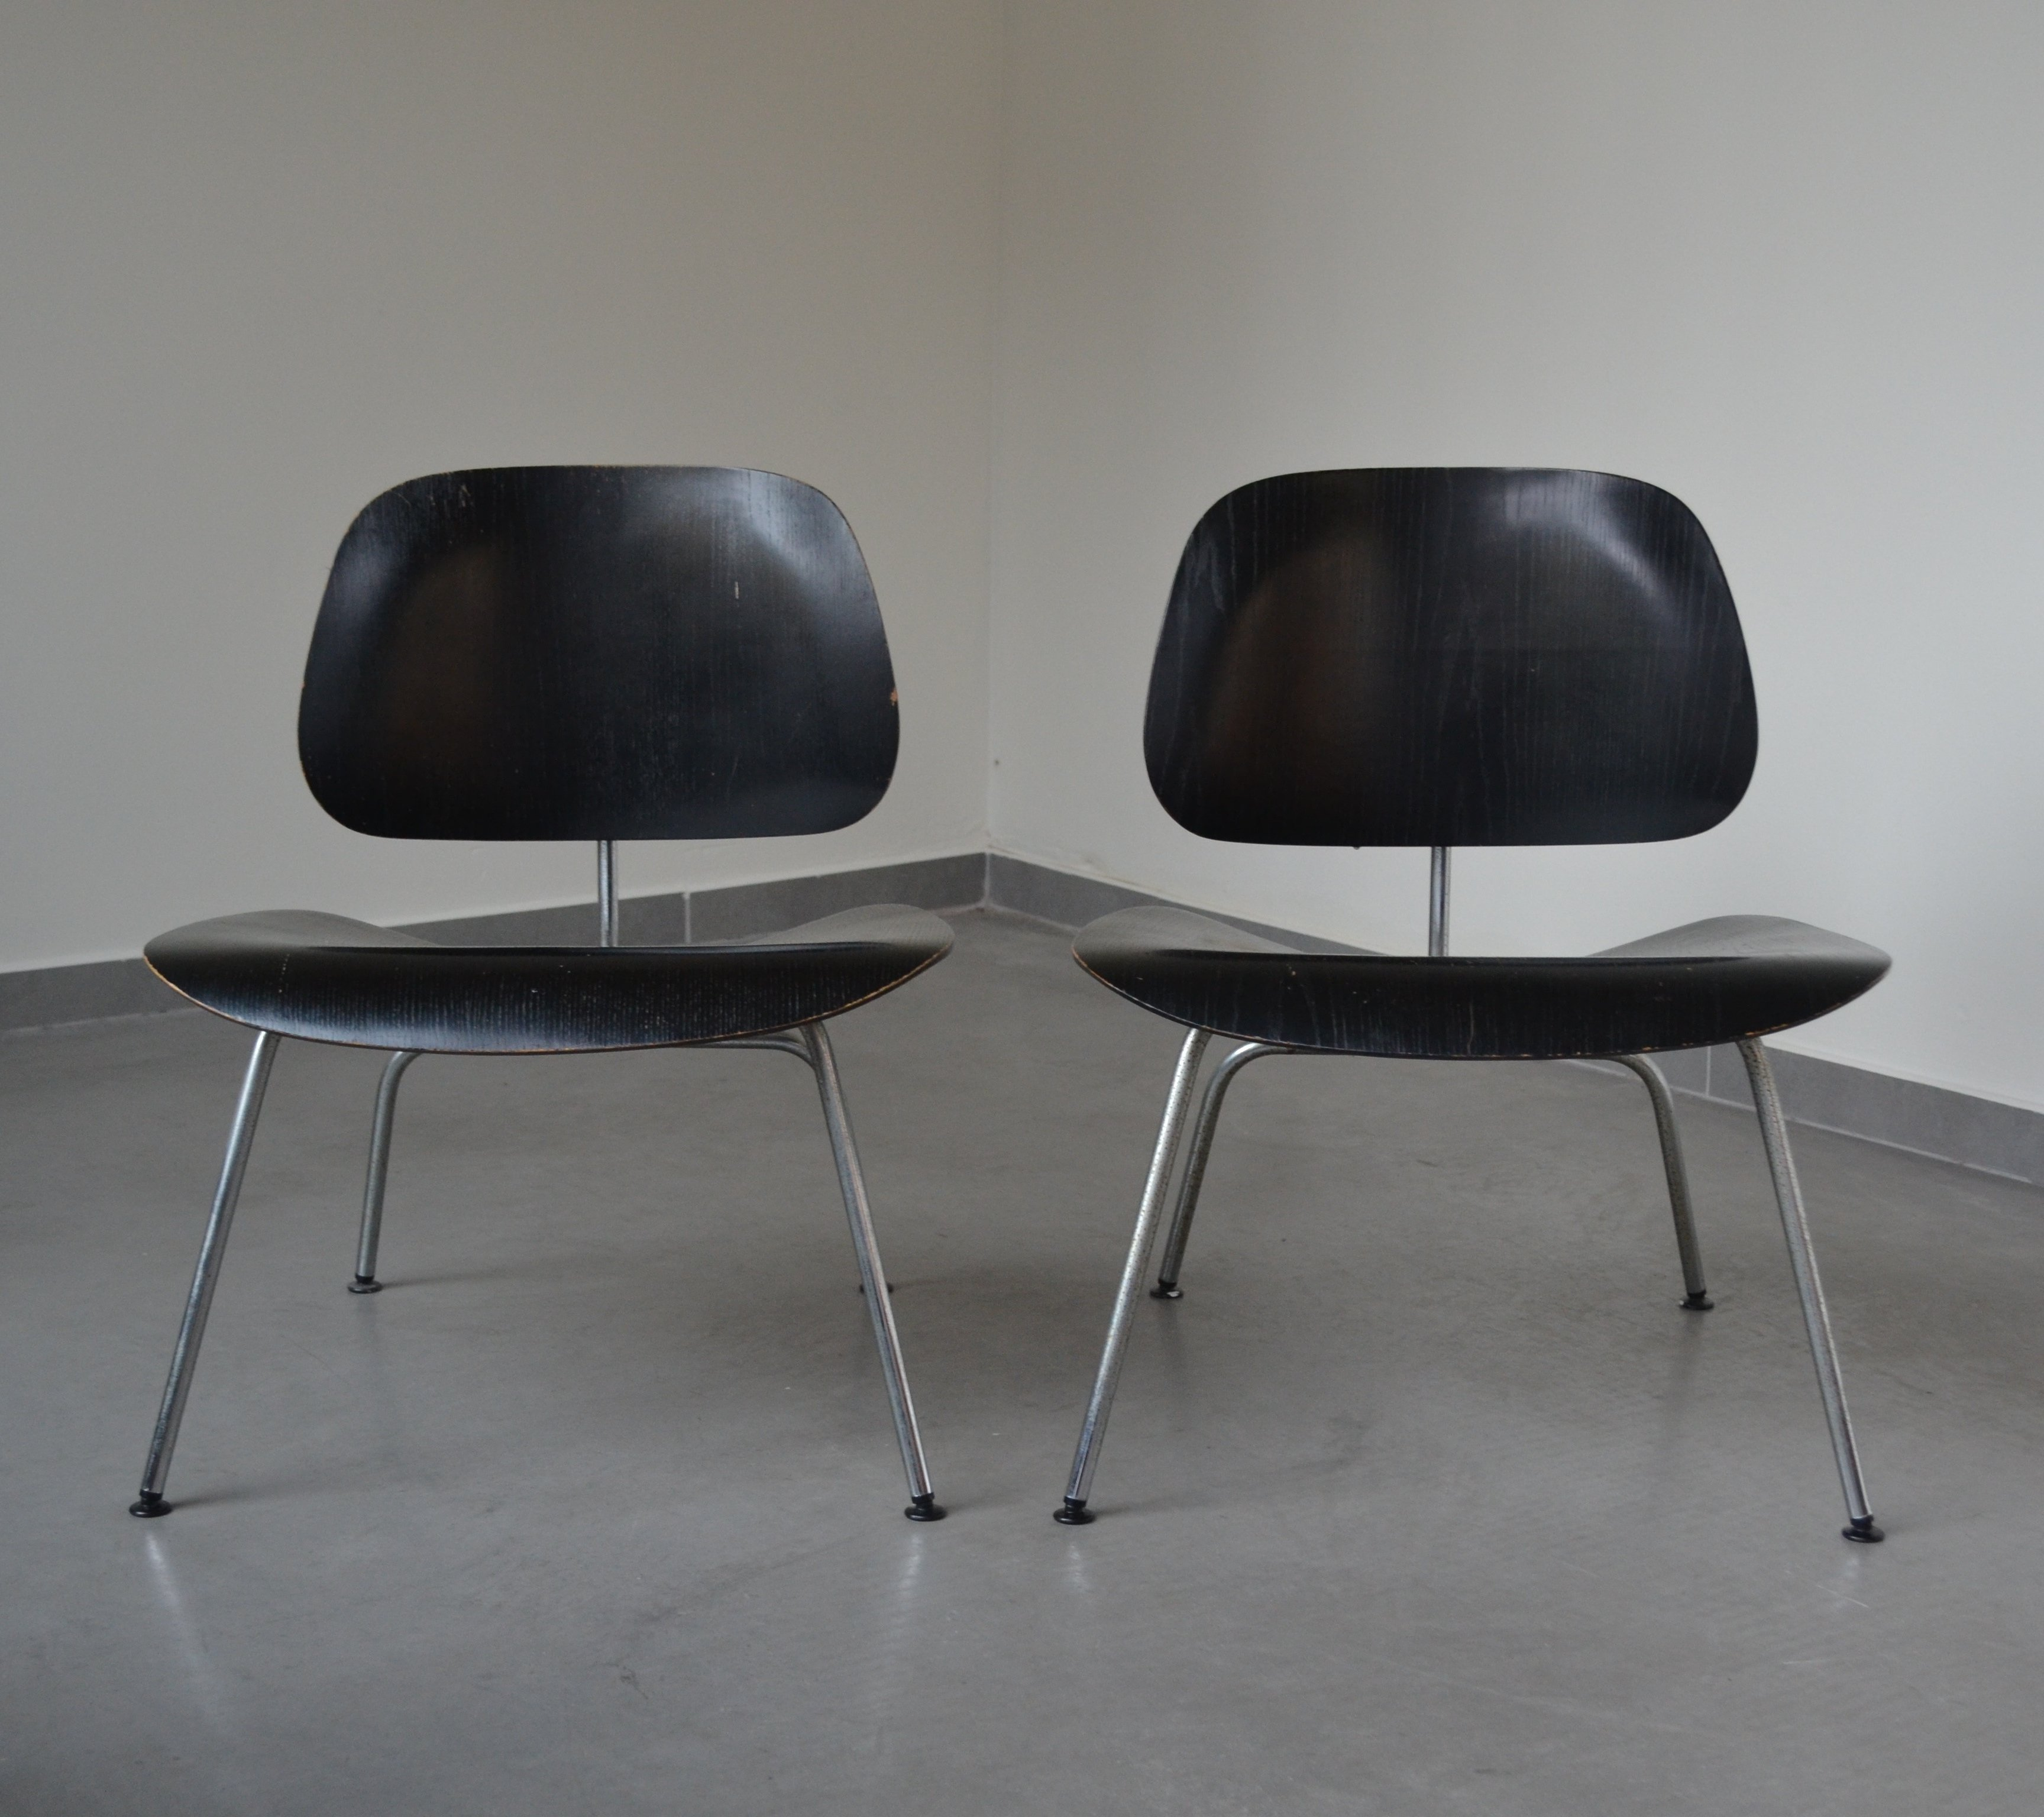 2 x lcm lounge chair by charles ray eames for herman. Black Bedroom Furniture Sets. Home Design Ideas